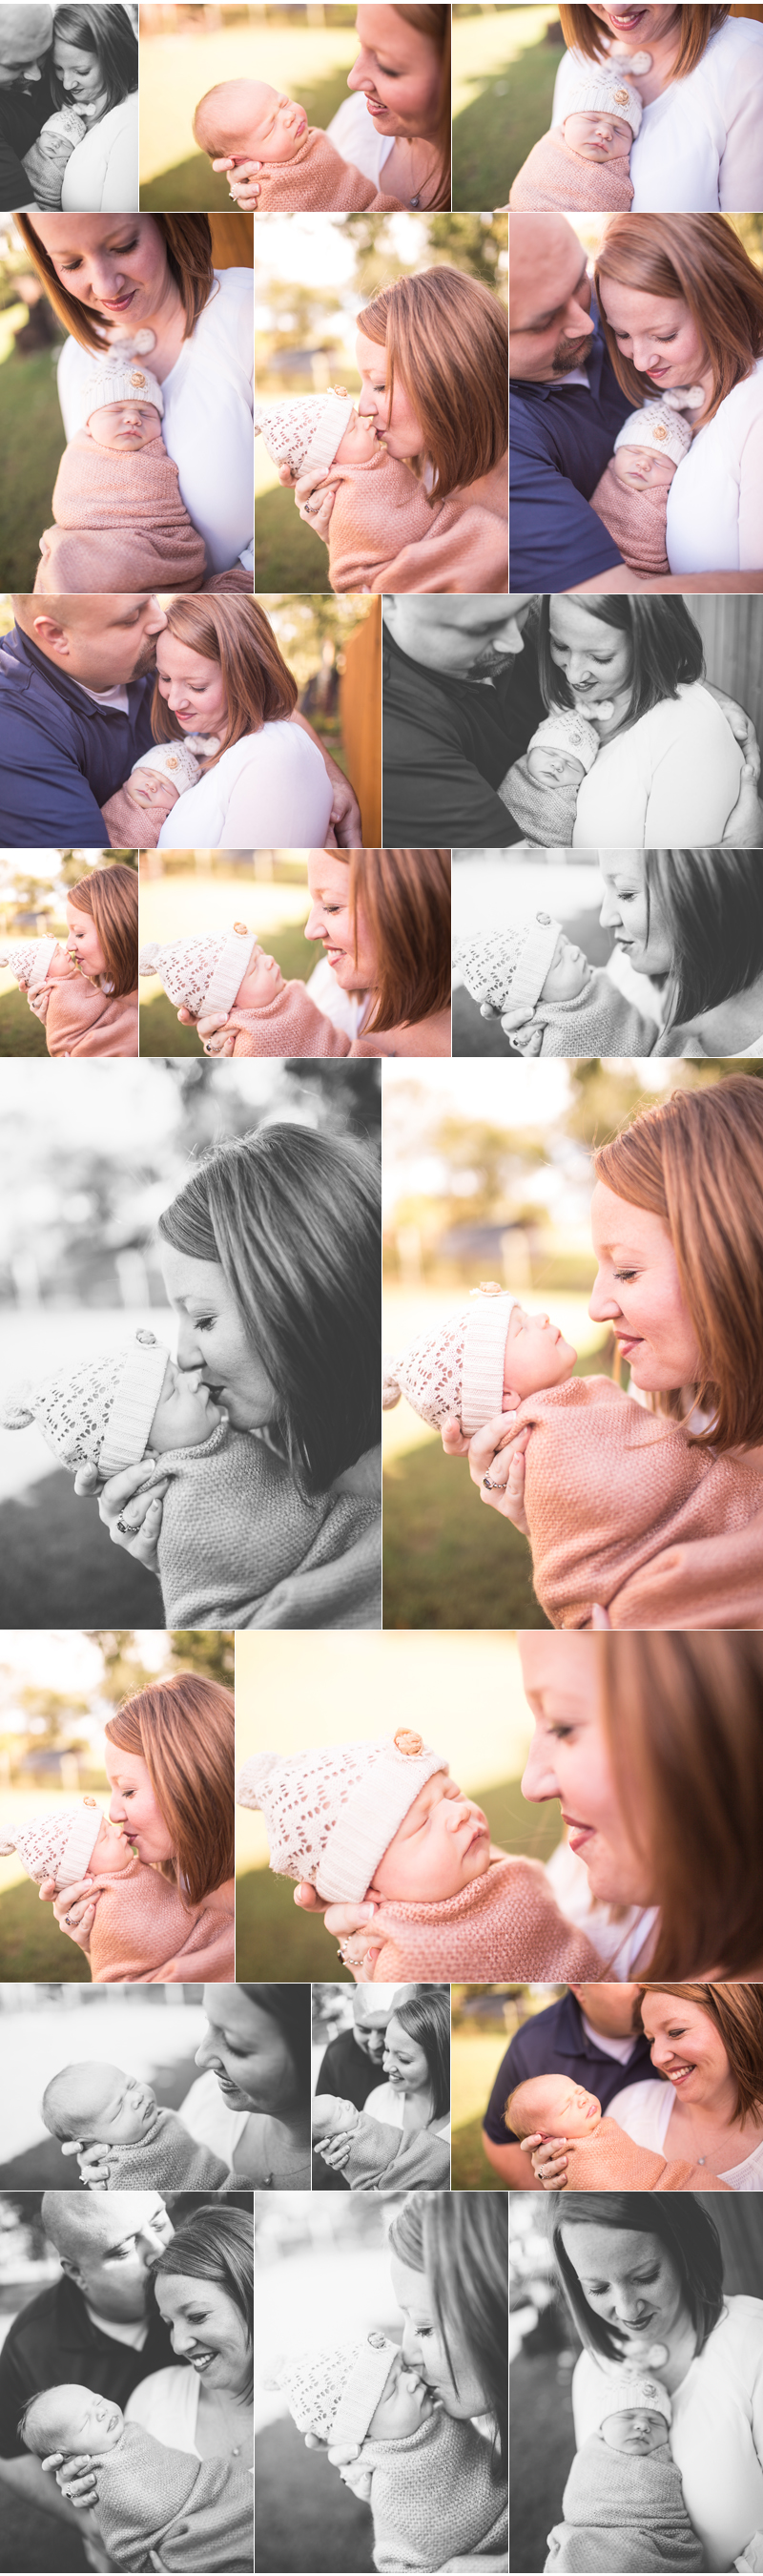 middle-tennessee-newborn-photographer-sara-e-rose-photography-01